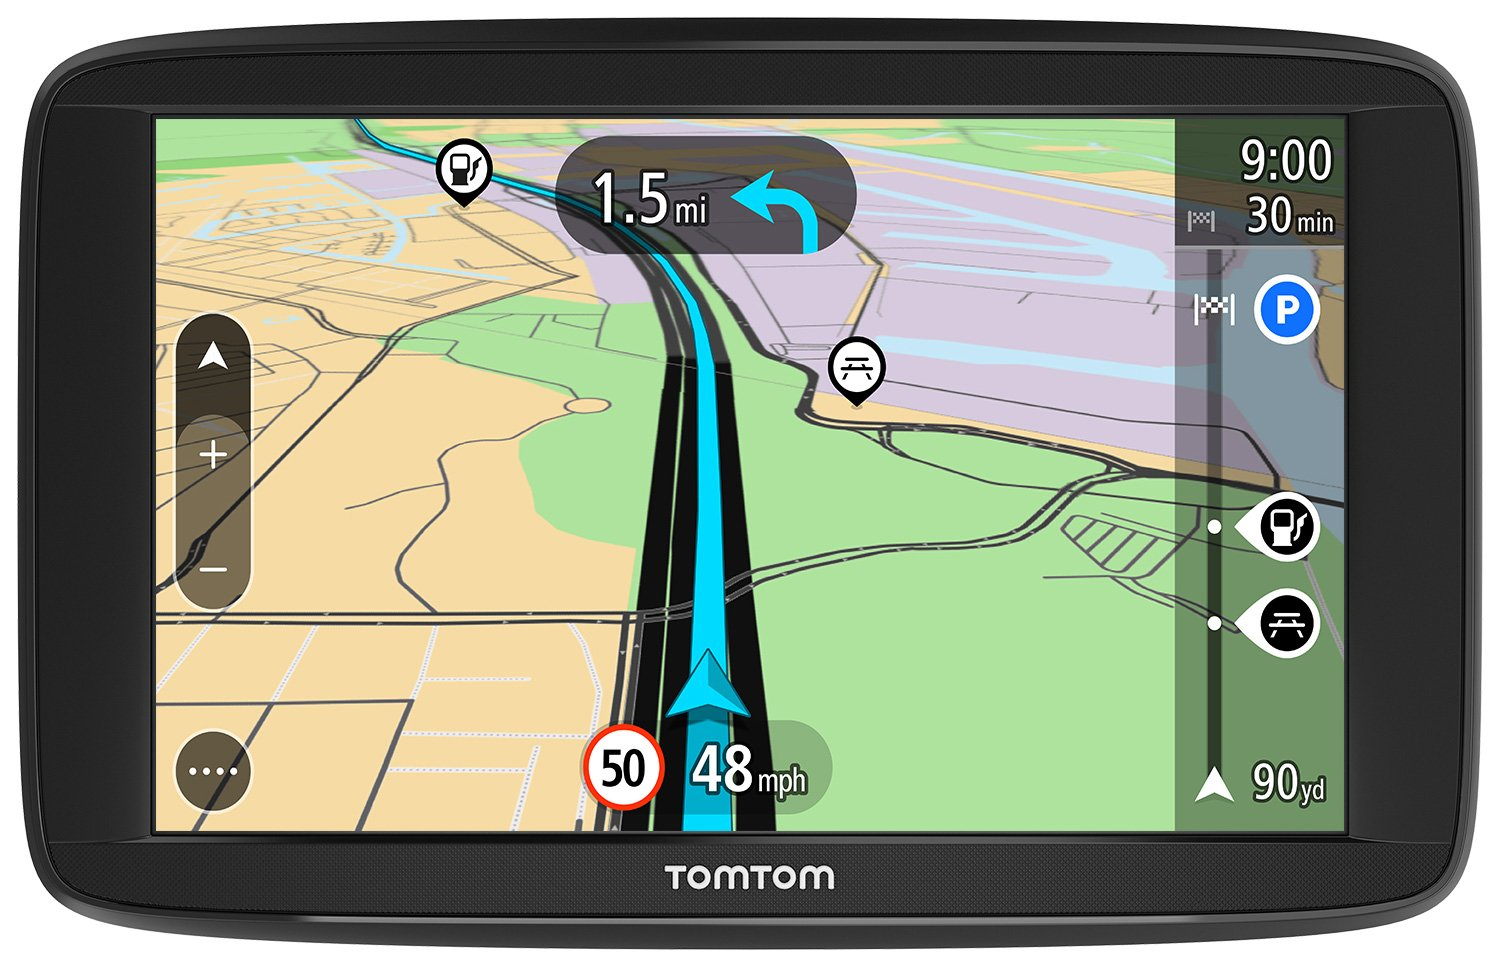 tomtom mydrive slow download